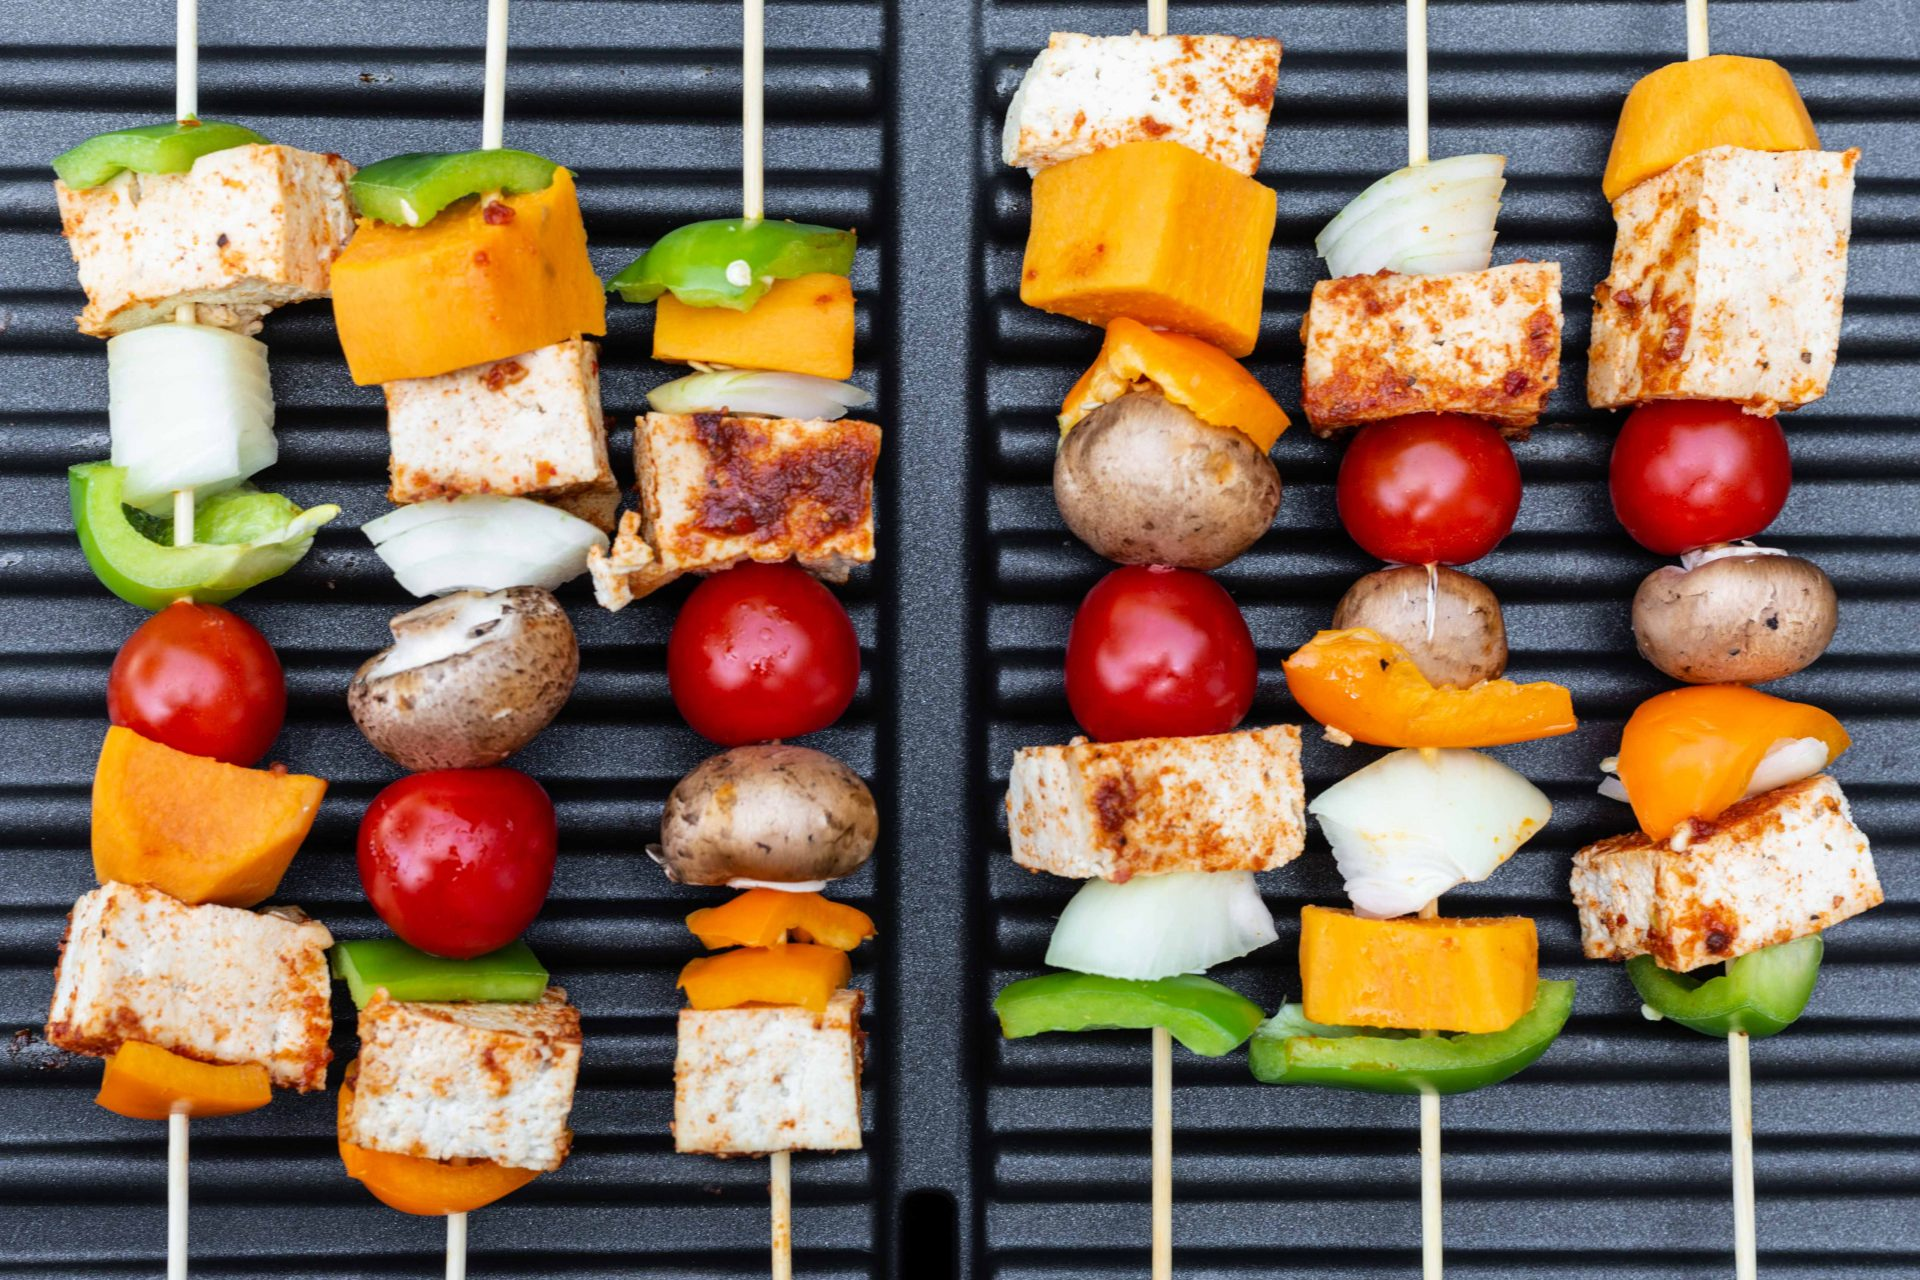 Veggie and Fruity Kebabs With A Twist